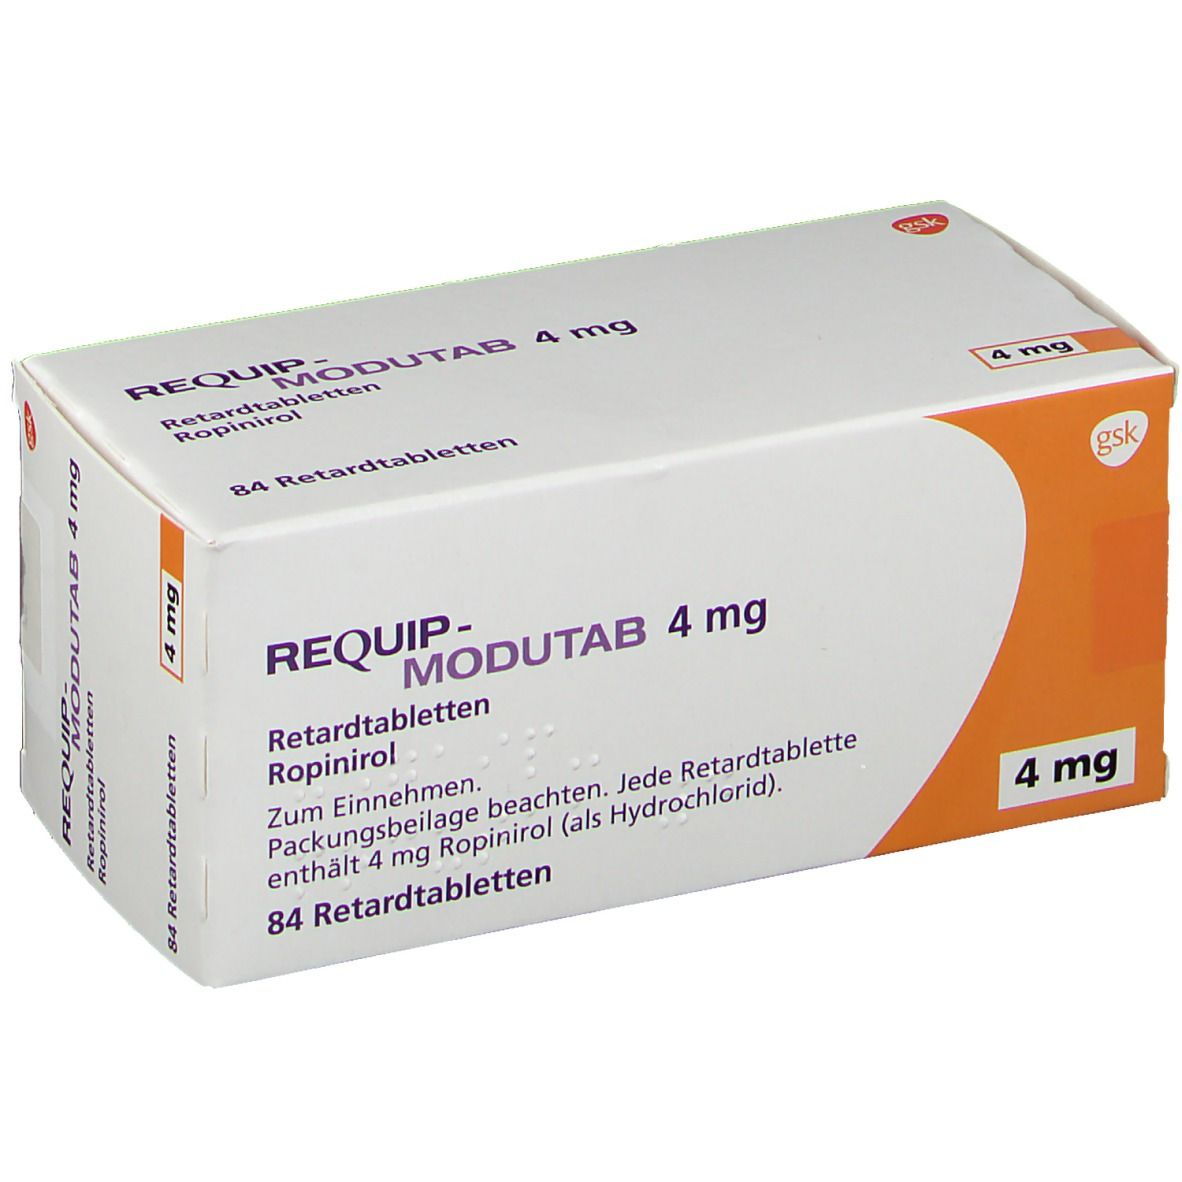 Ivermectin for humans for sale in uk